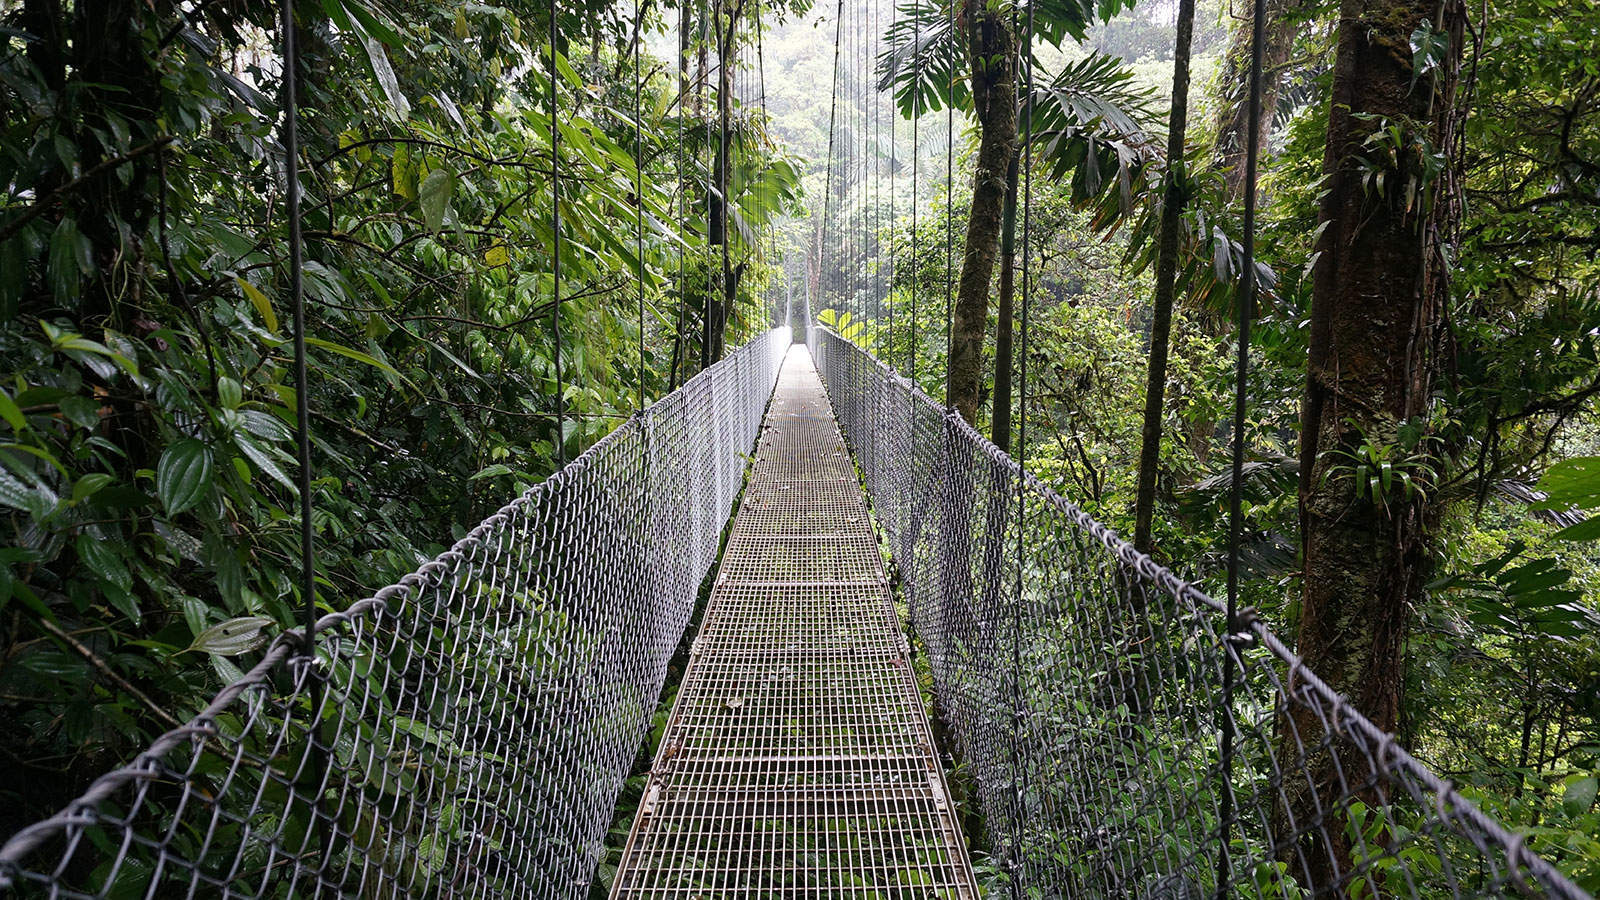 Hanging Bridges Tours & Breathtaking Costa Rica Jungle and Canopy Tours | Greentique